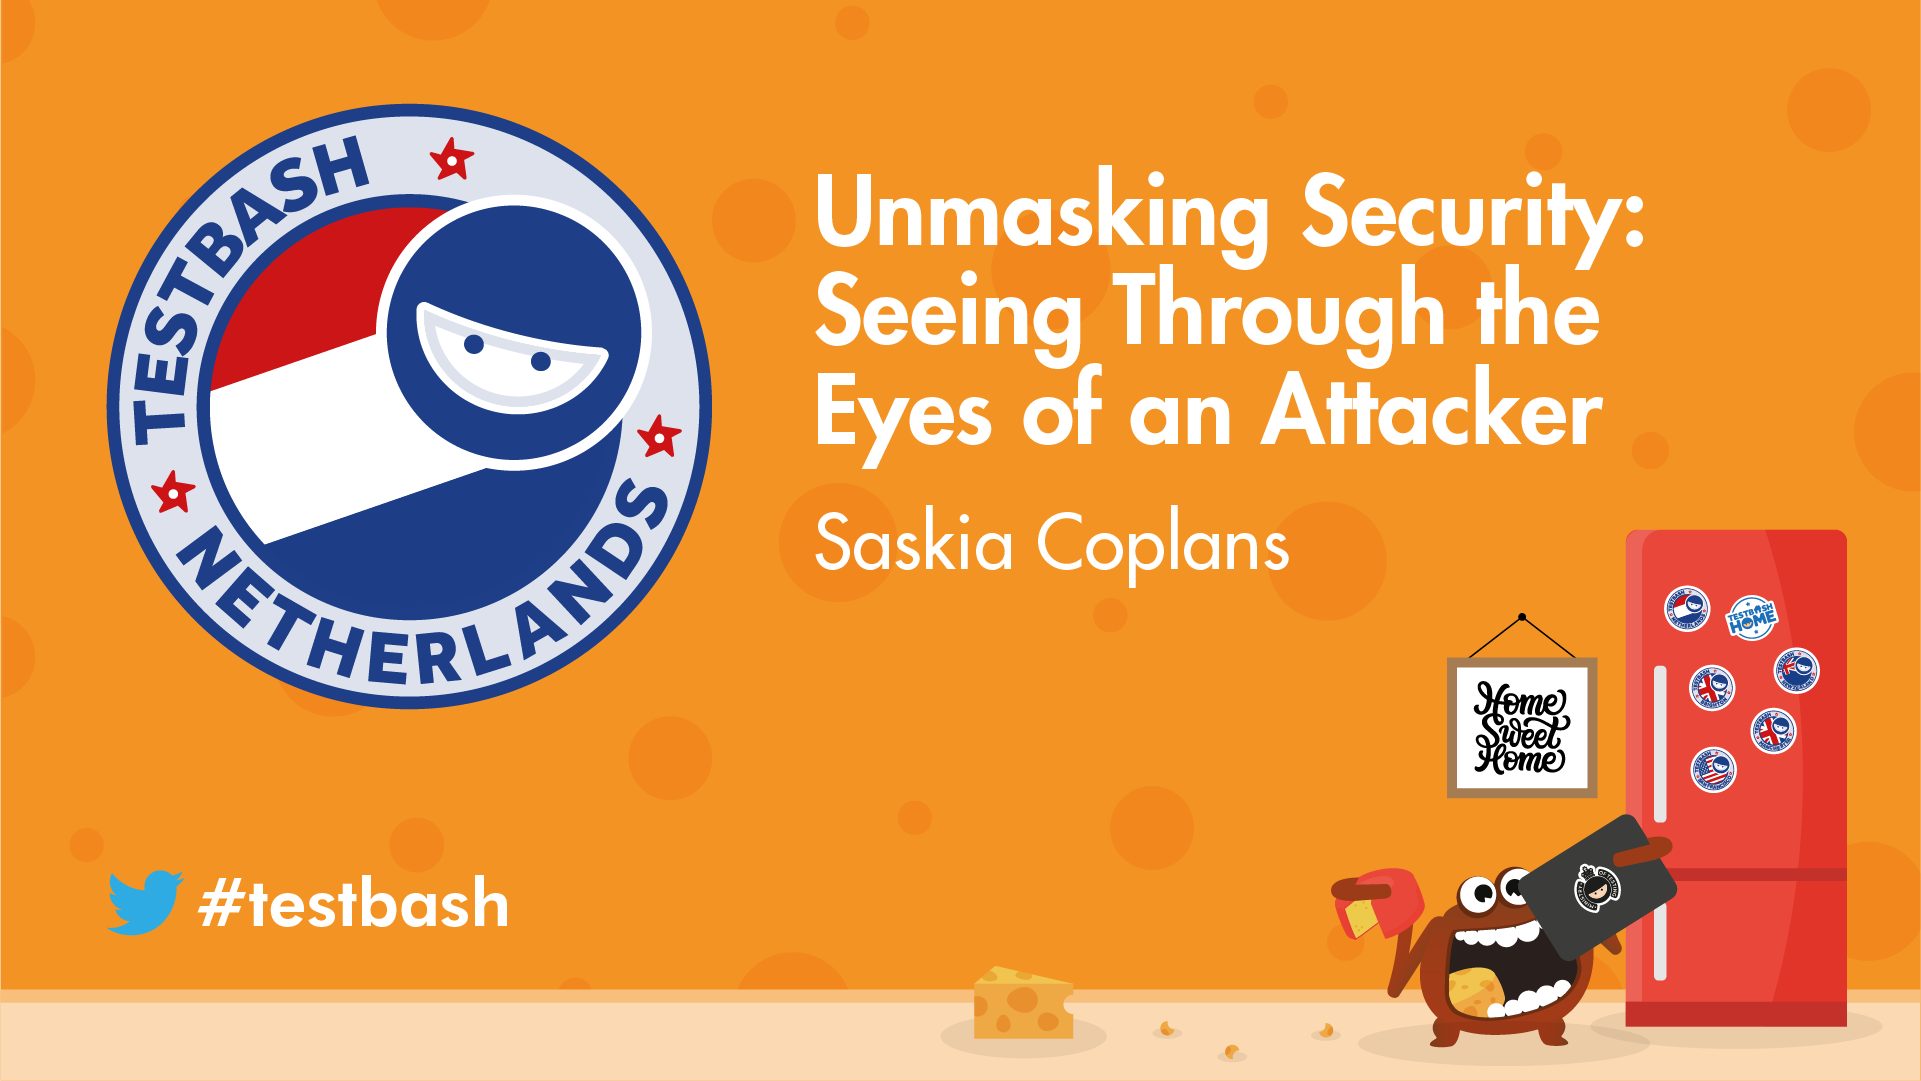 Unmasking Security: Seeing Through the Eyes of an Attacker - Saskia Coplans